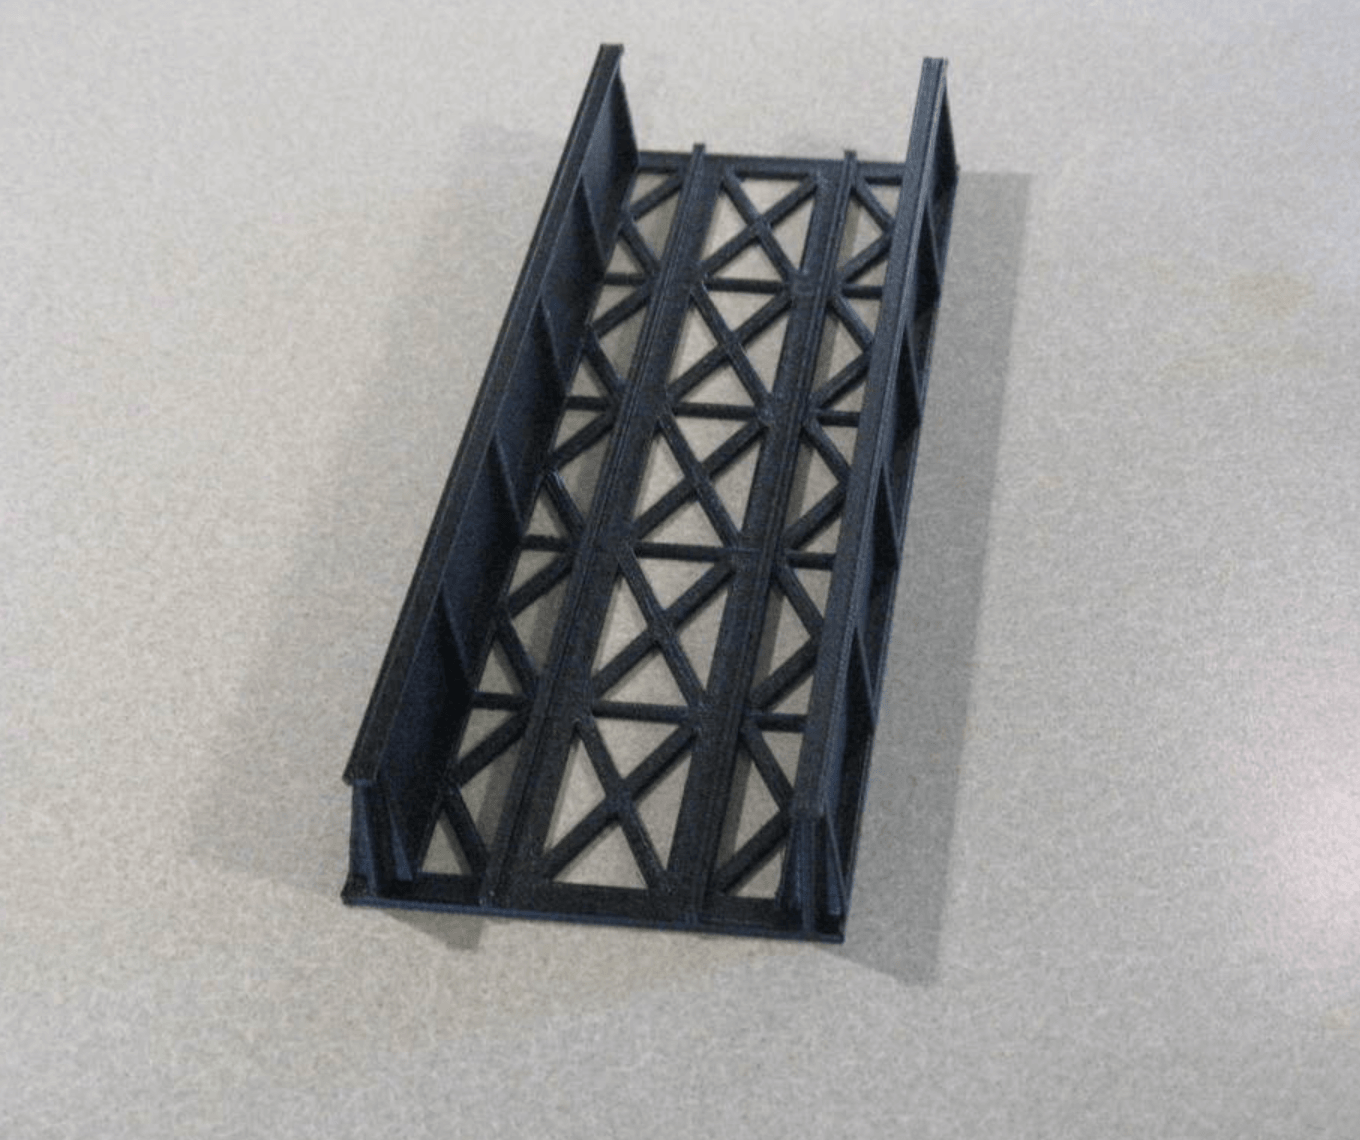 Capture d'écran 2018-05-15 à 09.55.26.png Download free STL file HO Scale Straight Bridge • 3D printing model, kabrumble